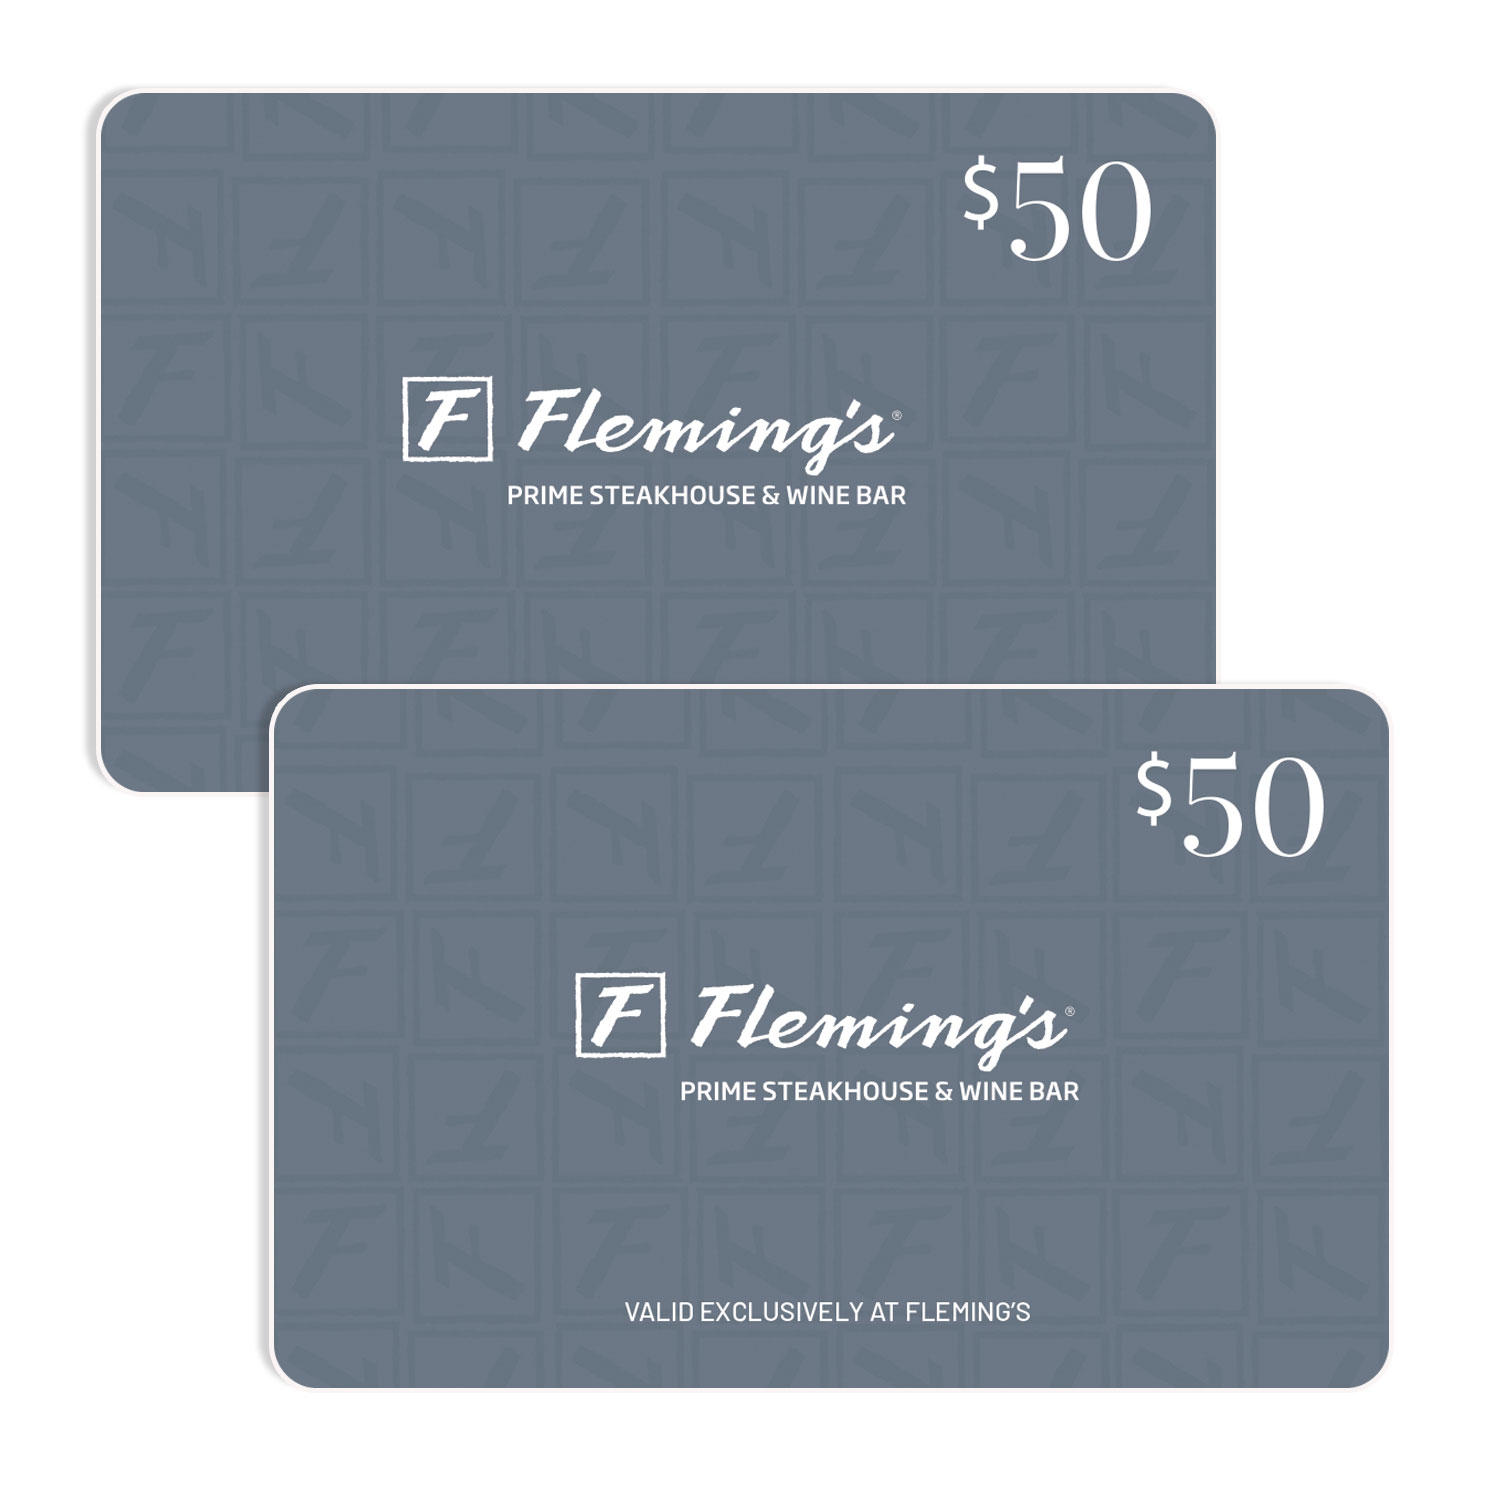 $100 (2 x $50) Fleming's Prime Steakhouse Gift Cards